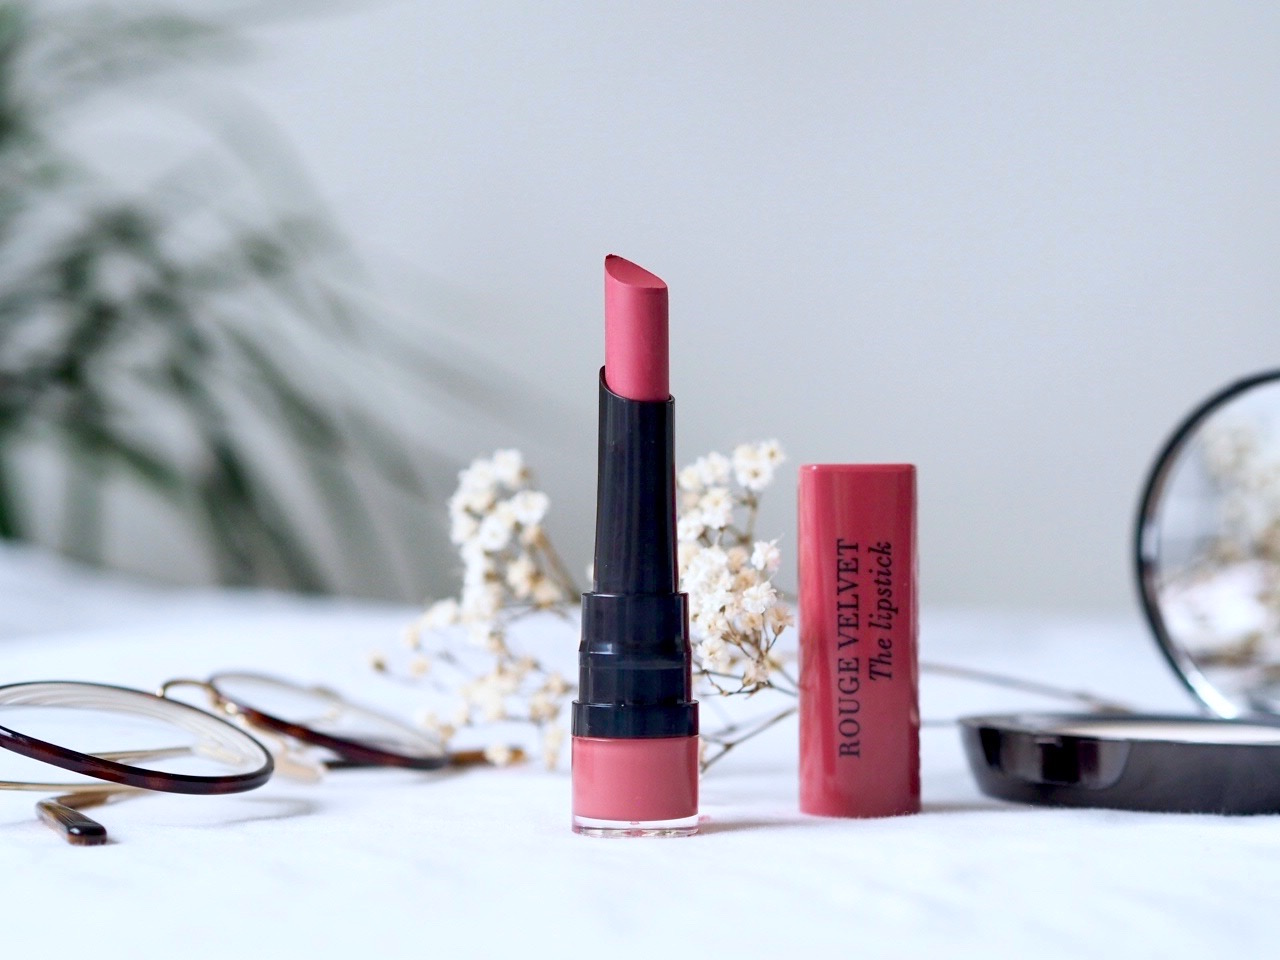 My New Favourites: Bourjois Rouge Velvet The Lipstick